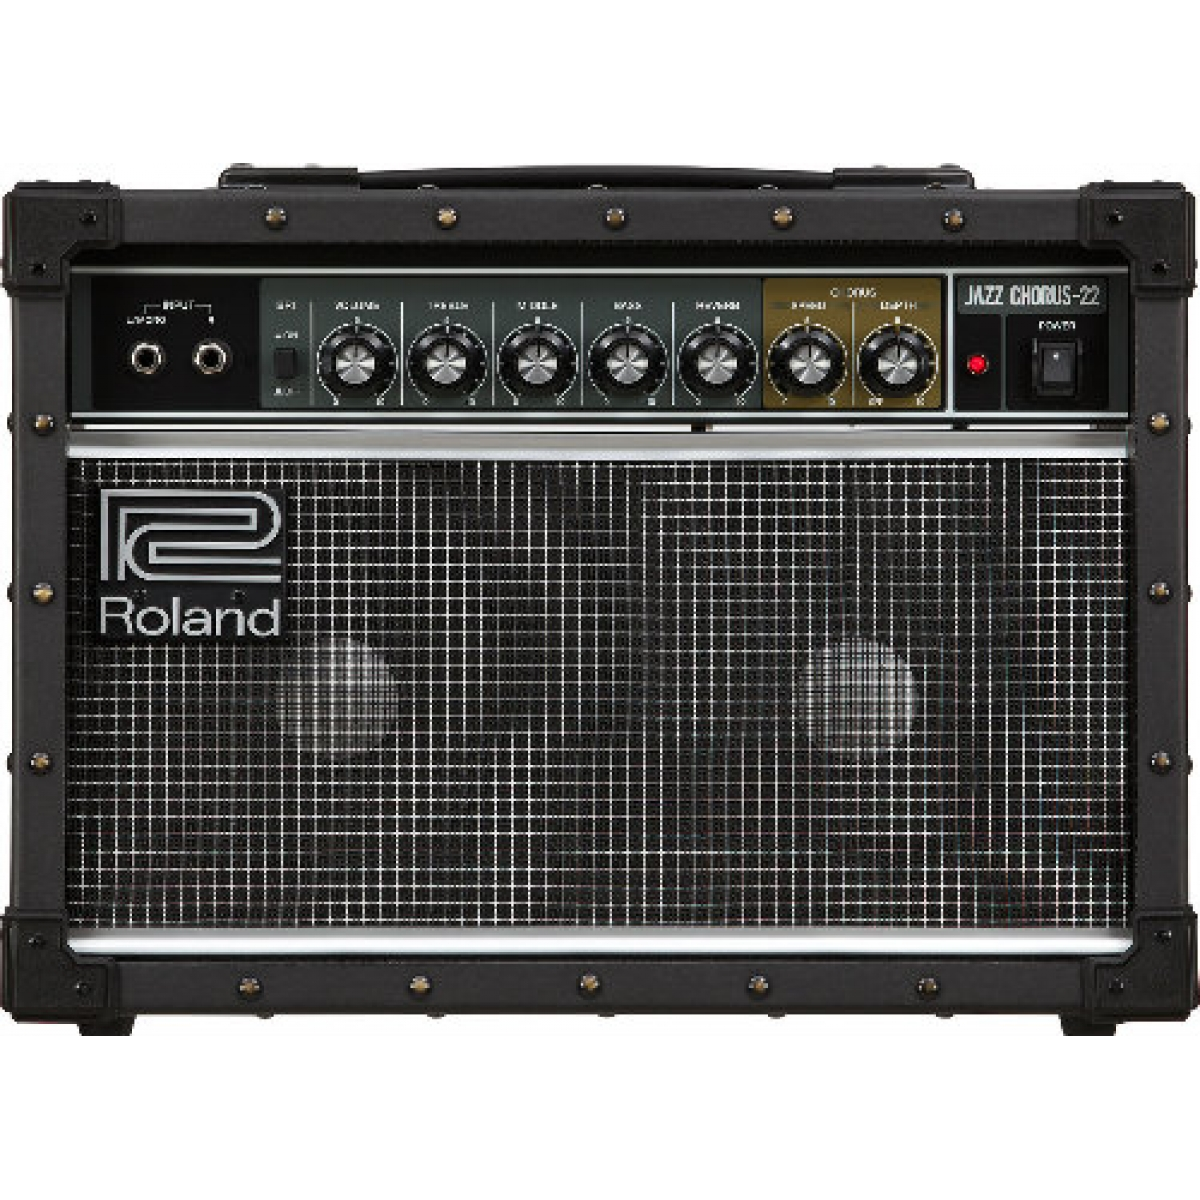 roland jc22 30w 2 x 6 5 stereo guitar combo at promenade music. Black Bedroom Furniture Sets. Home Design Ideas